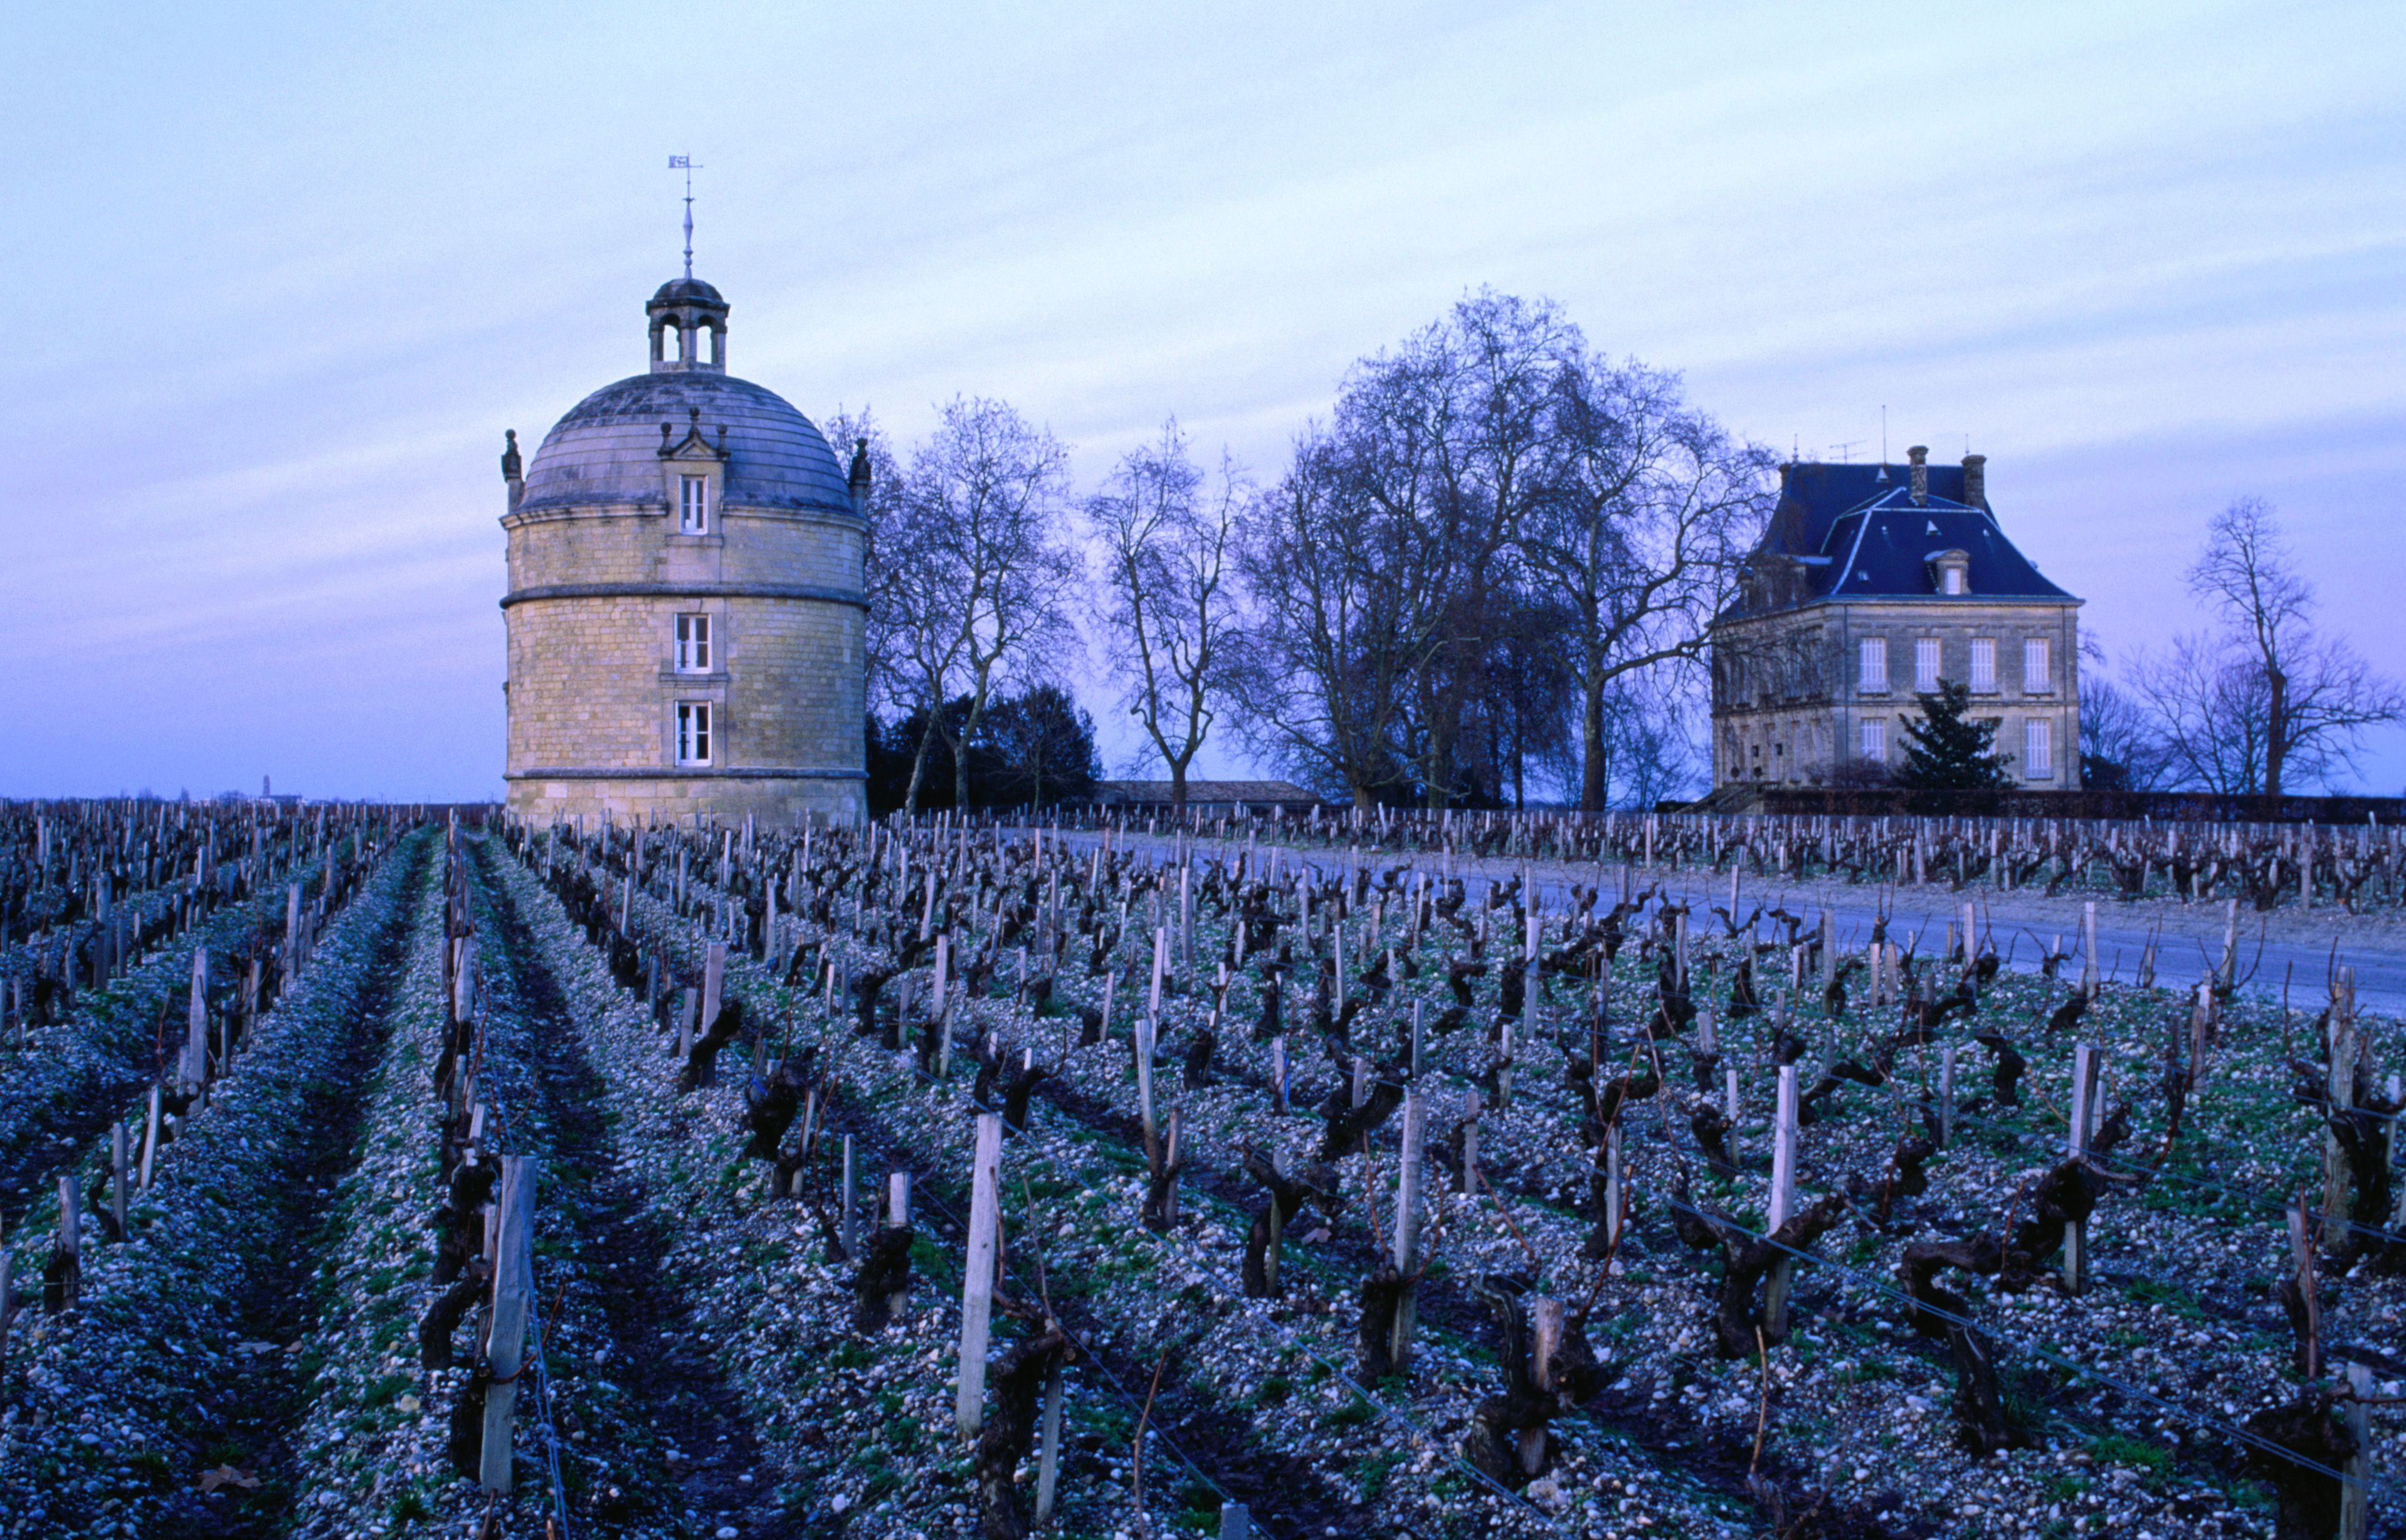 Chateau Latour in Medoc